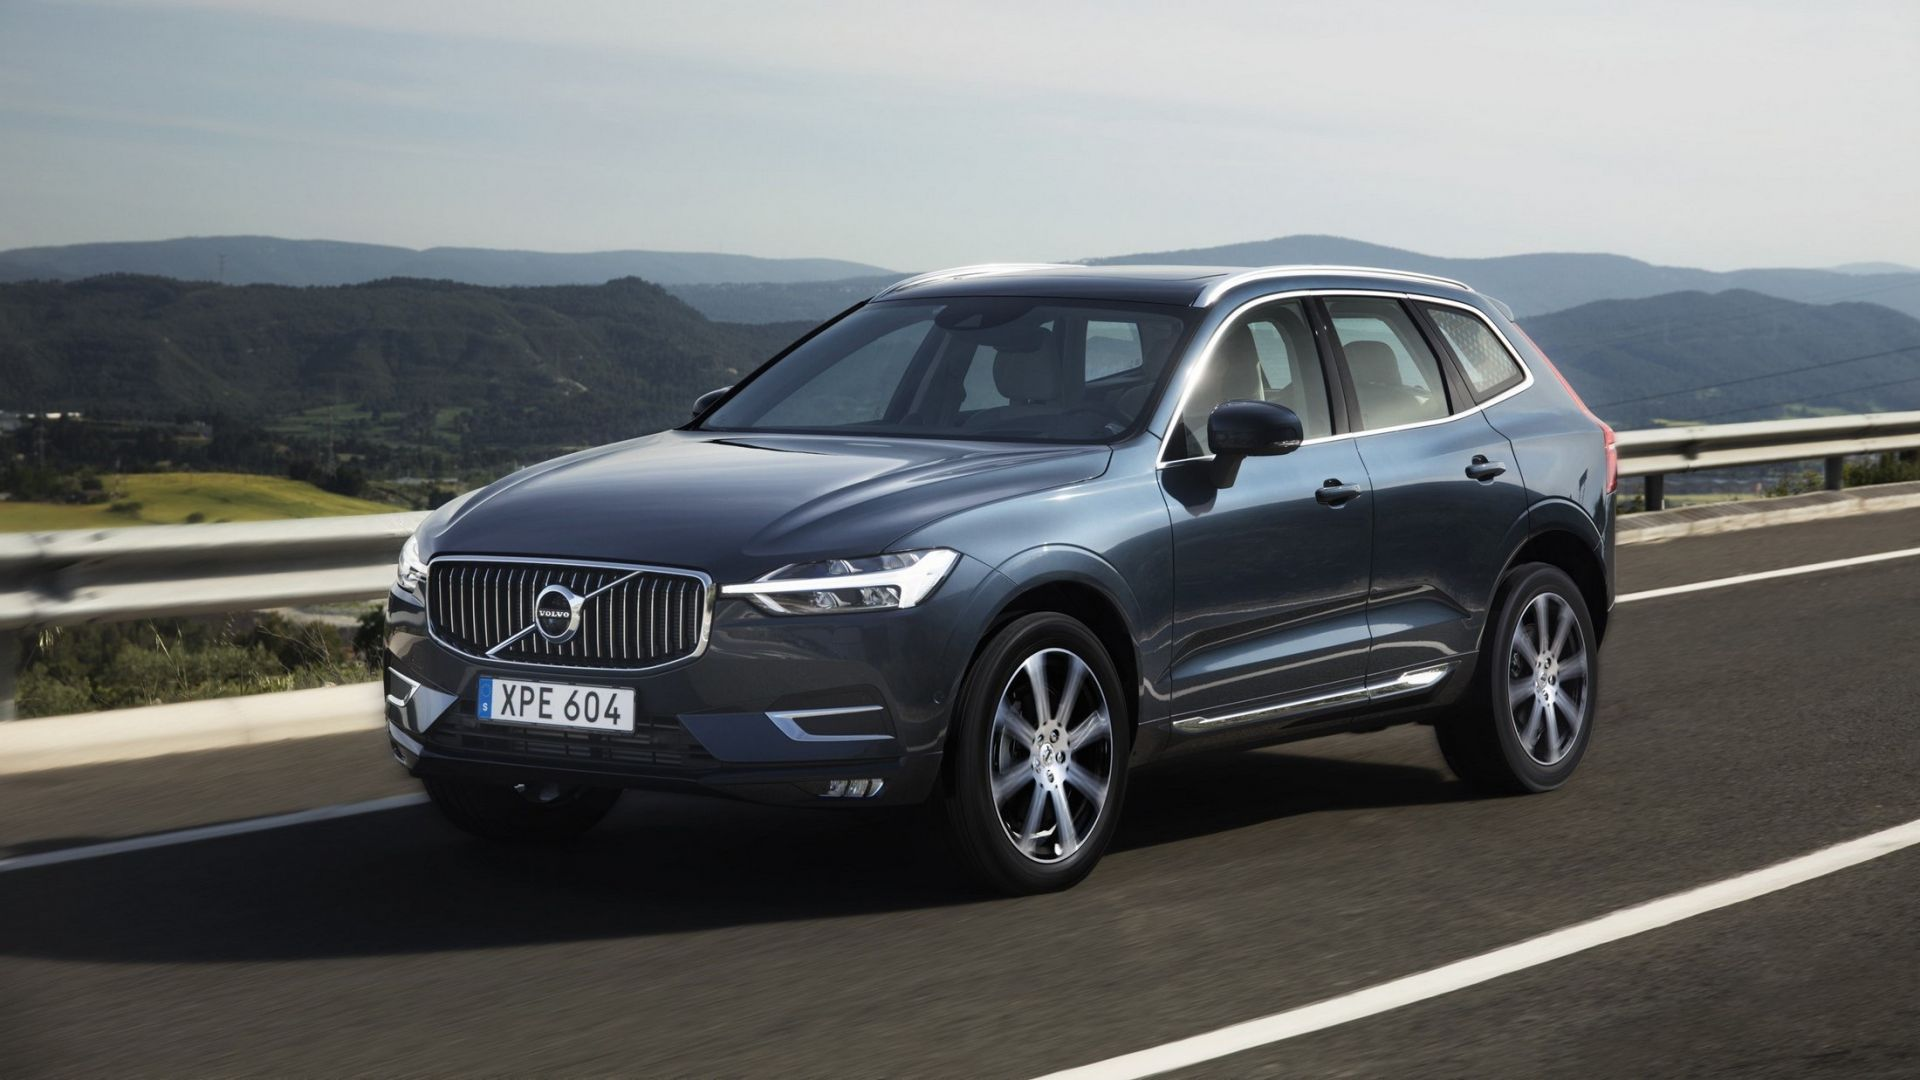 volvo xc60 vince il premio world car of the year 2018